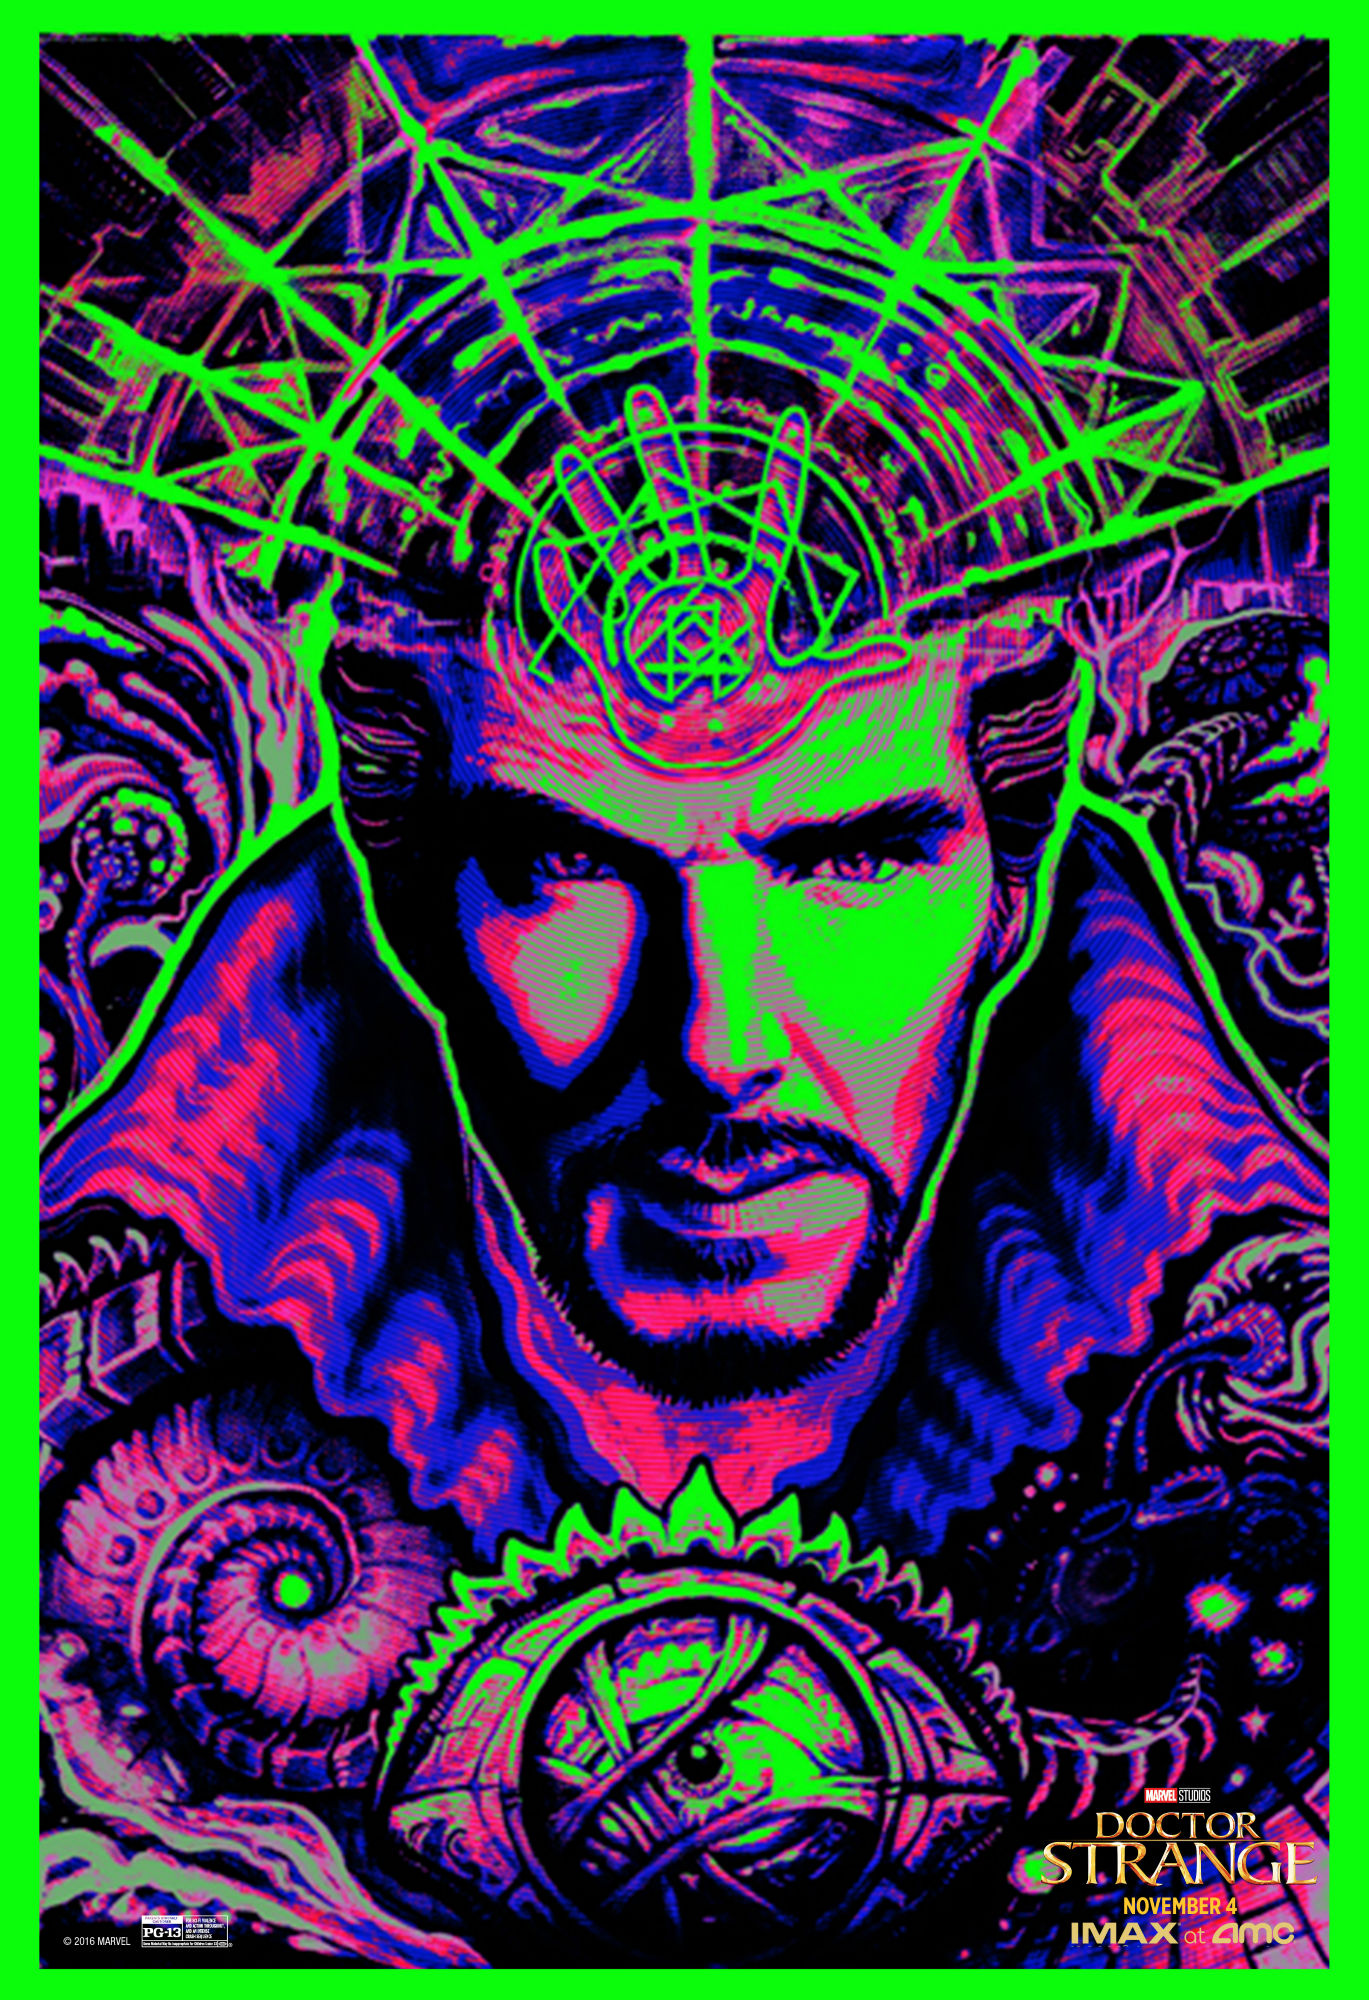 Doctor Strange black light poster